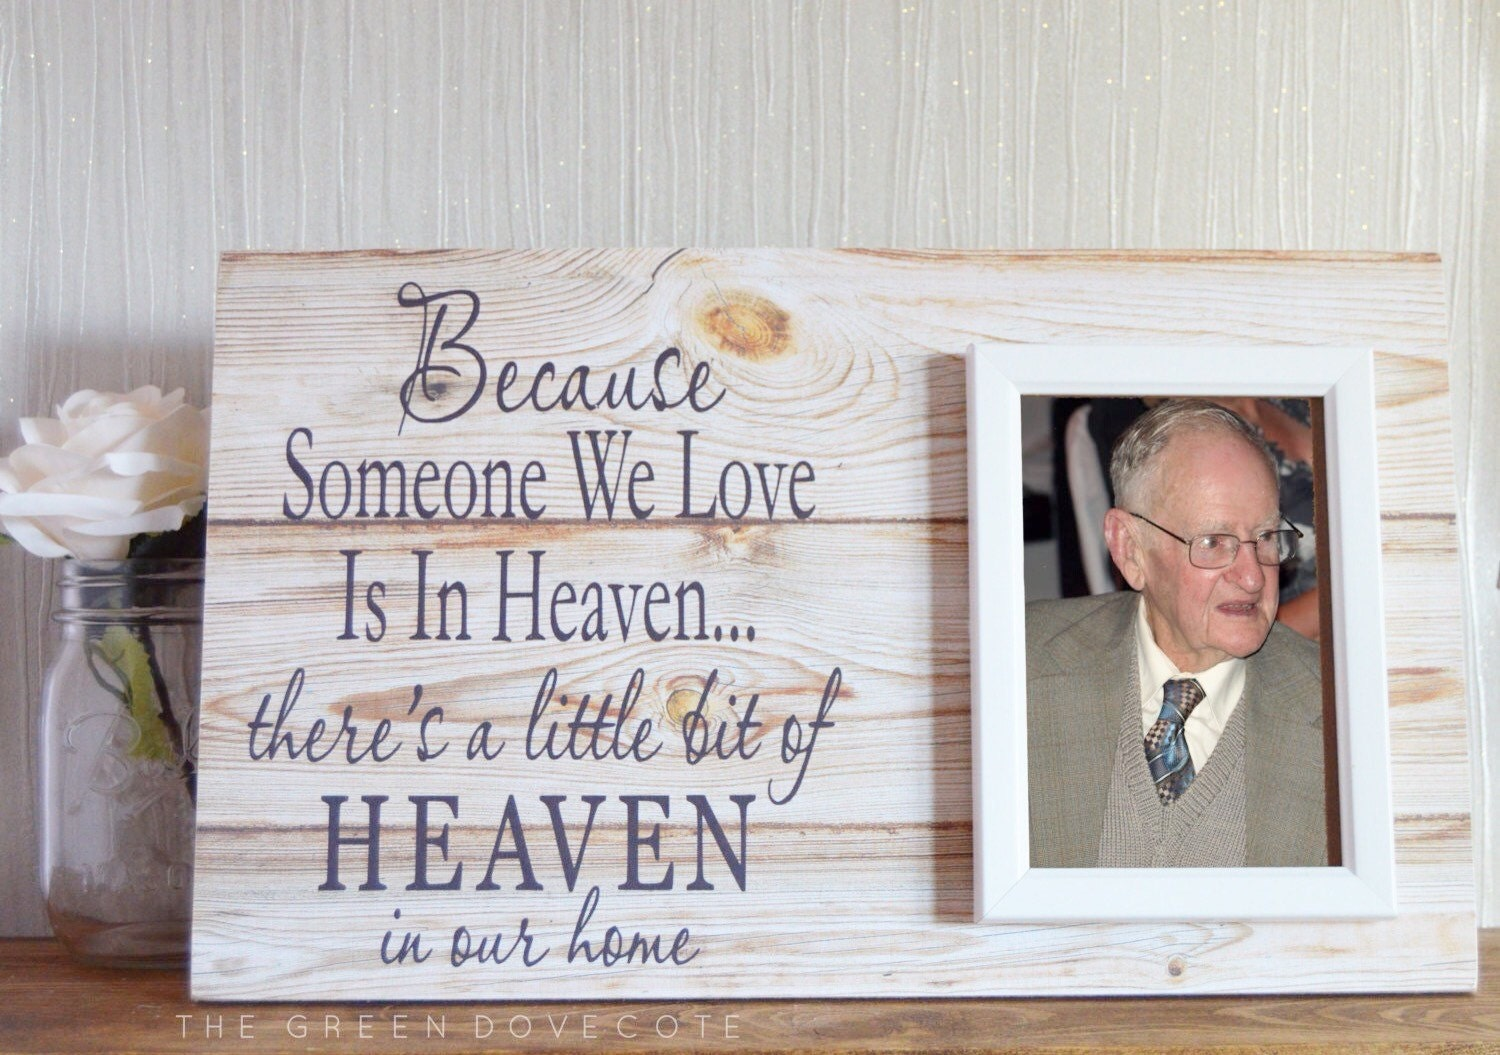 Because Someone We Love Is In Heaven Memorial Gift